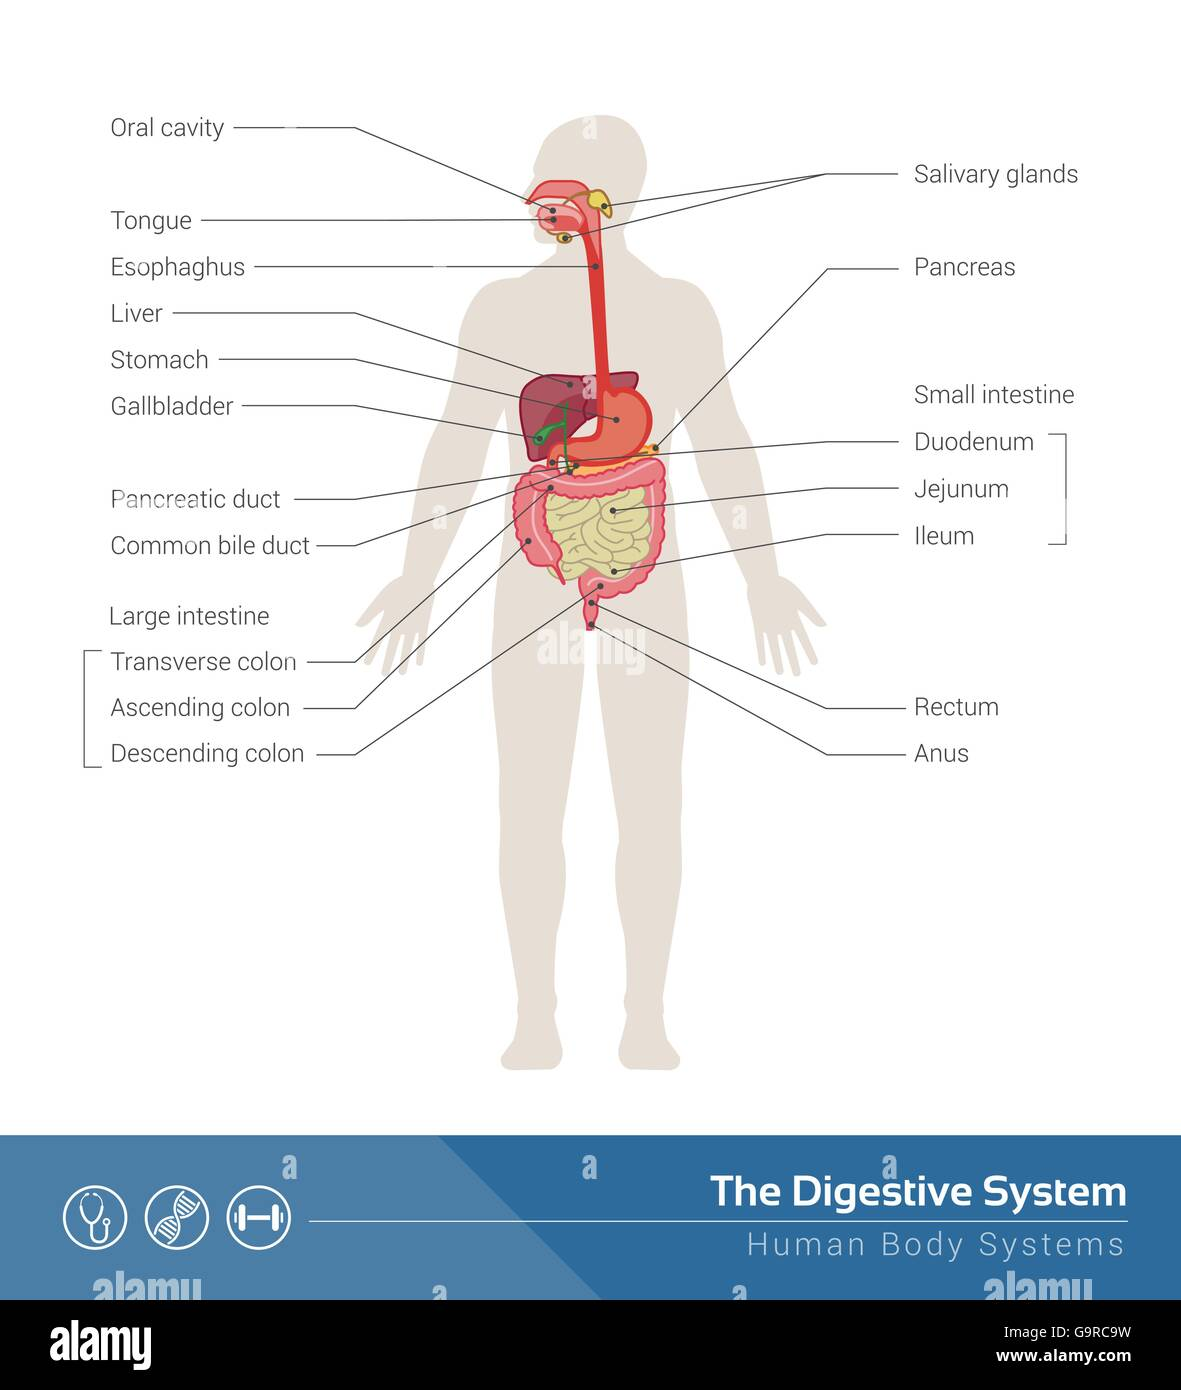 Organs Of The Digestive System Stockfotos & Organs Of The Digestive ...